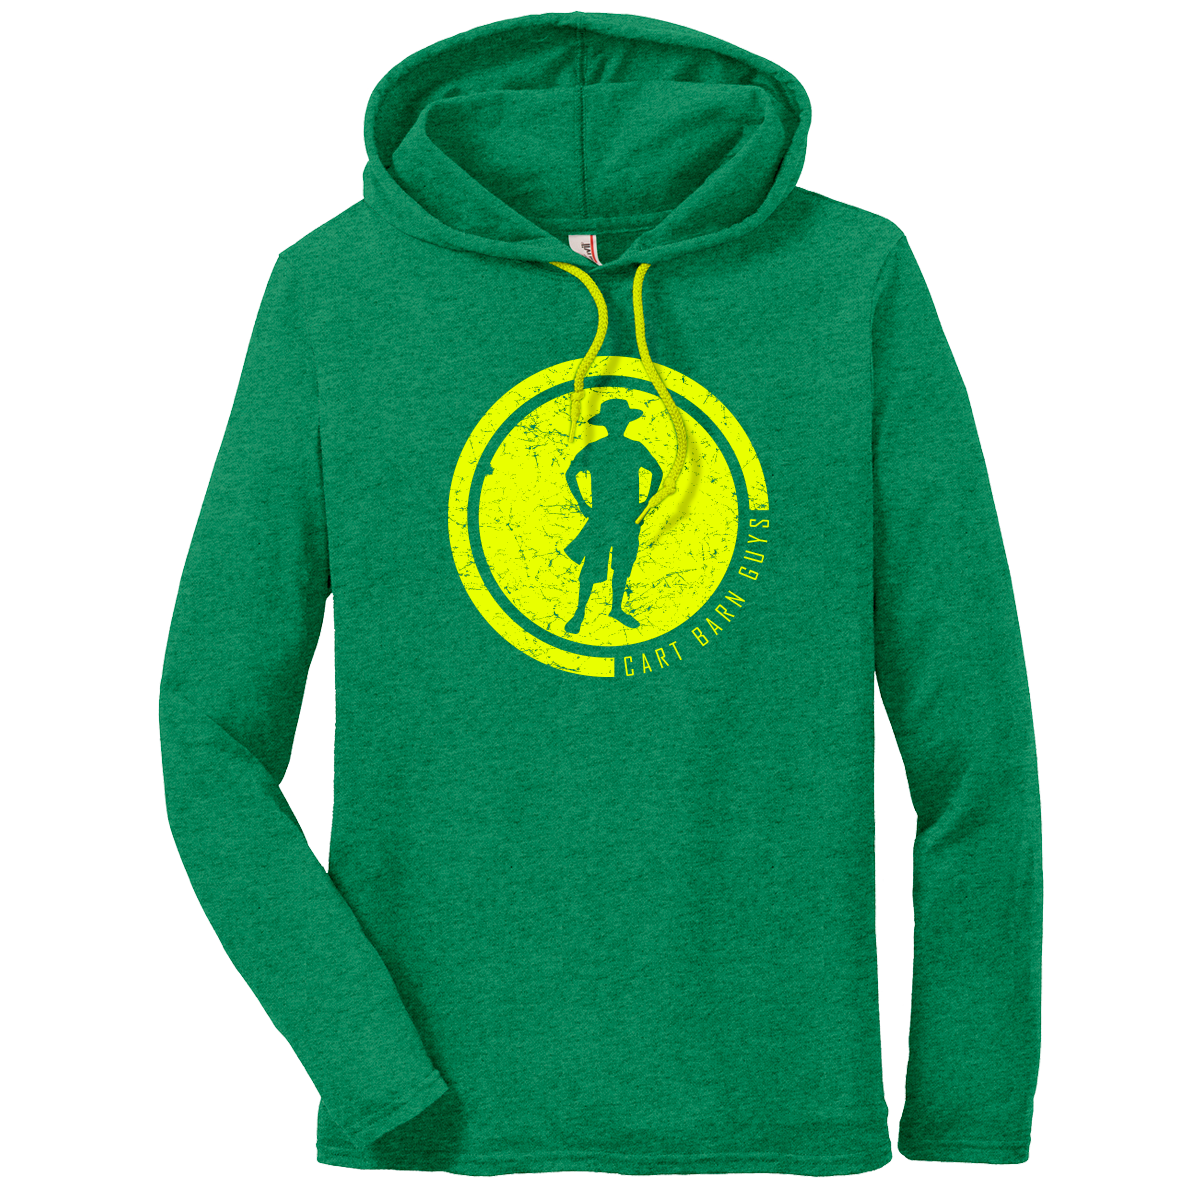 2019 Green Hooded Sweatshirt